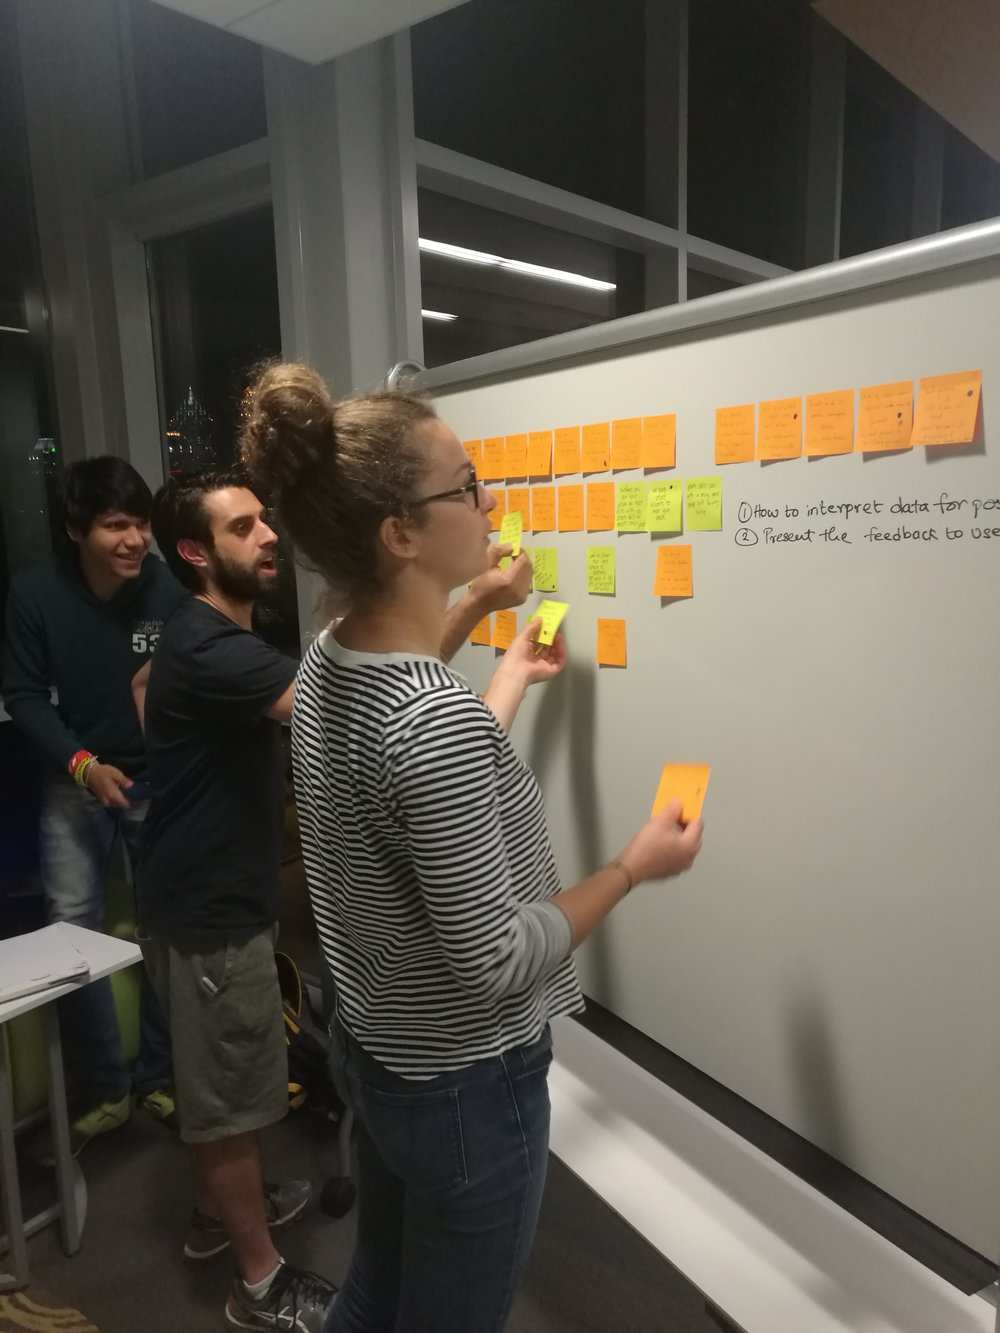 Clustering ideas & identifying themes